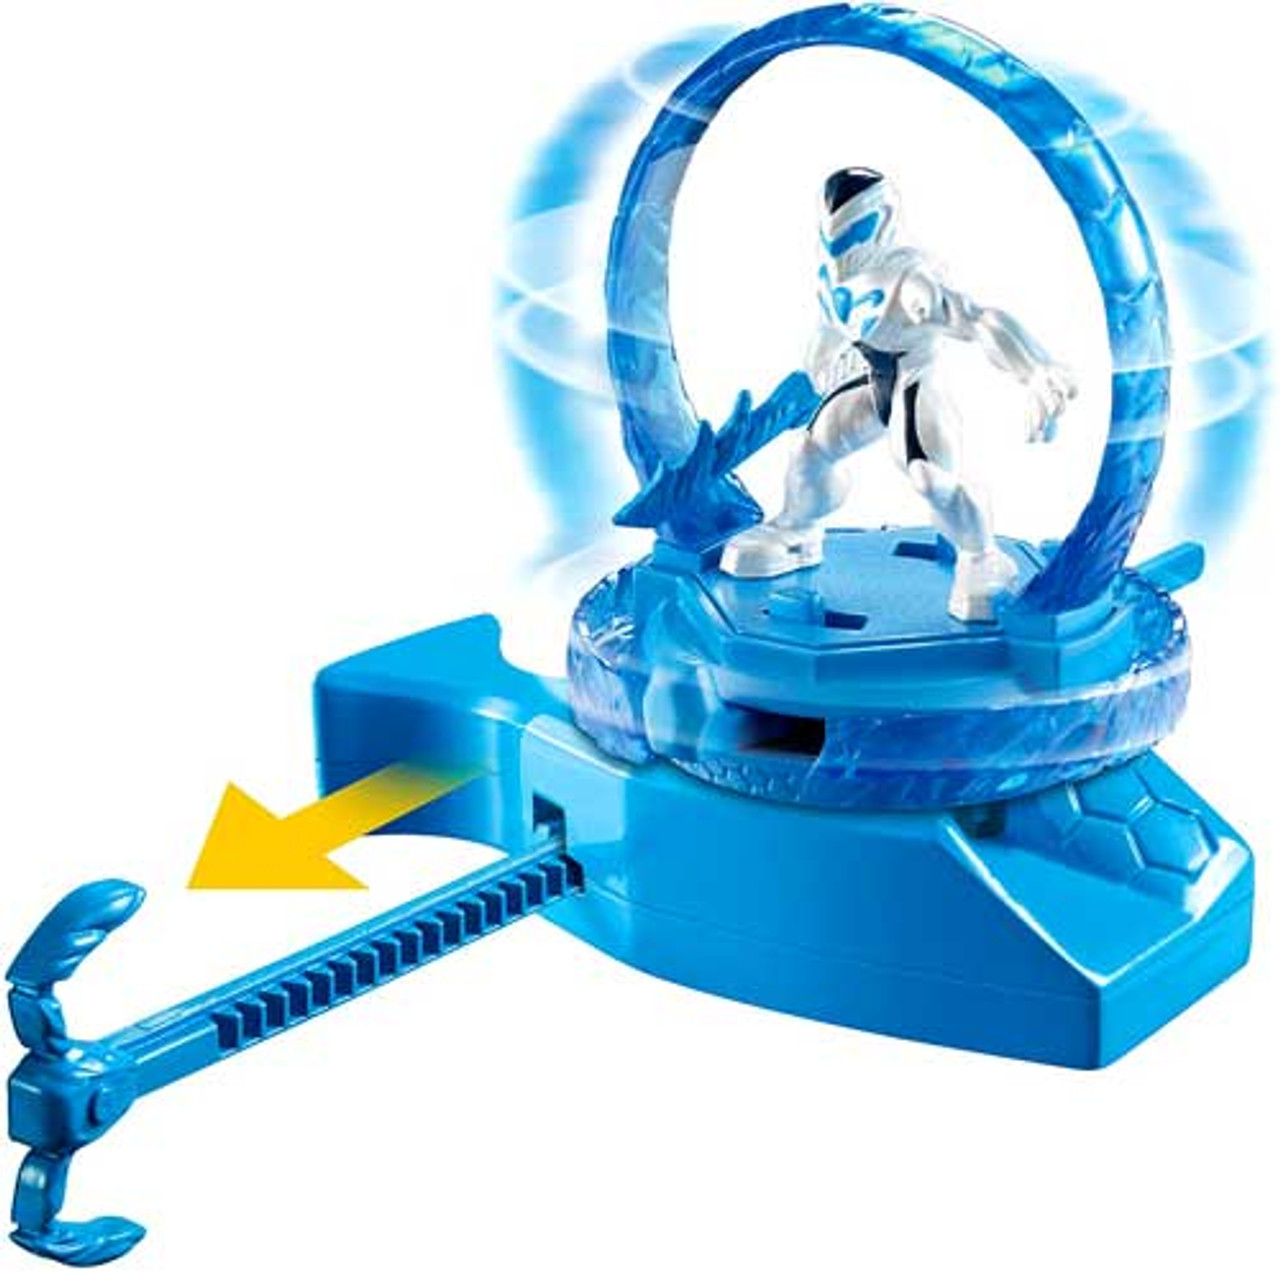 Turbo Battlers Max Steel Figure [Turbo Energy]